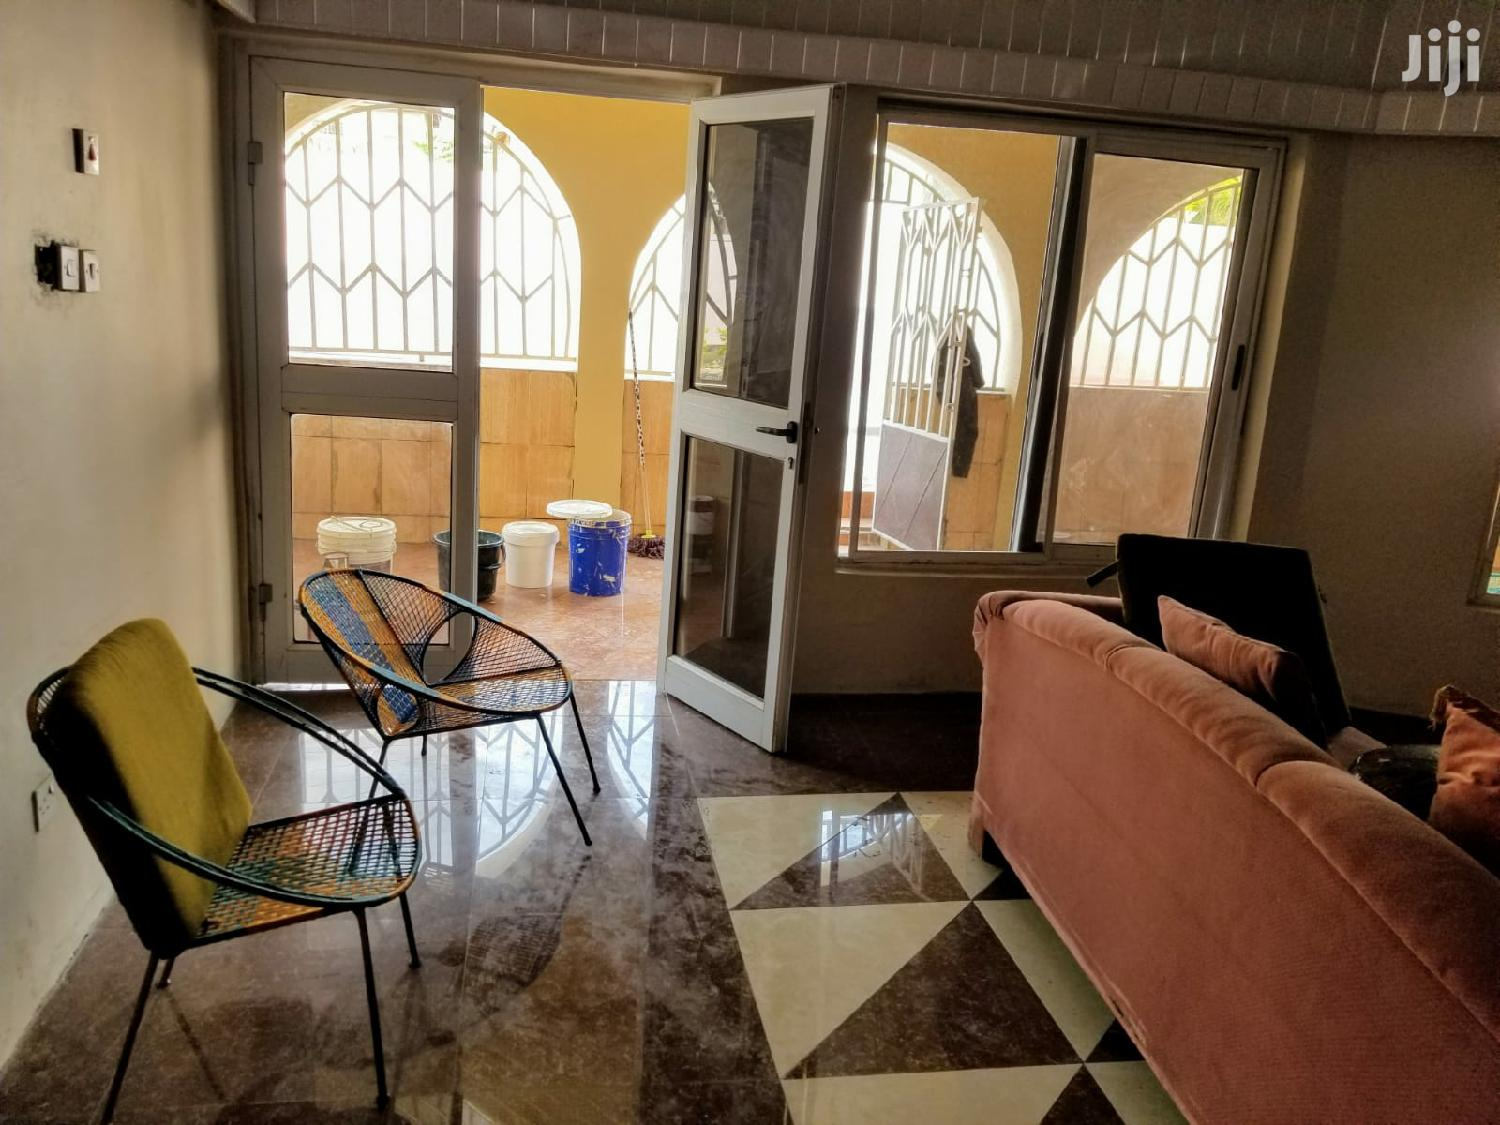 Five Bed Room House At Abrepo-atafoa For Sale | Houses & Apartments For Sale for sale in Kumasi Metropolitan, Ashanti, Ghana